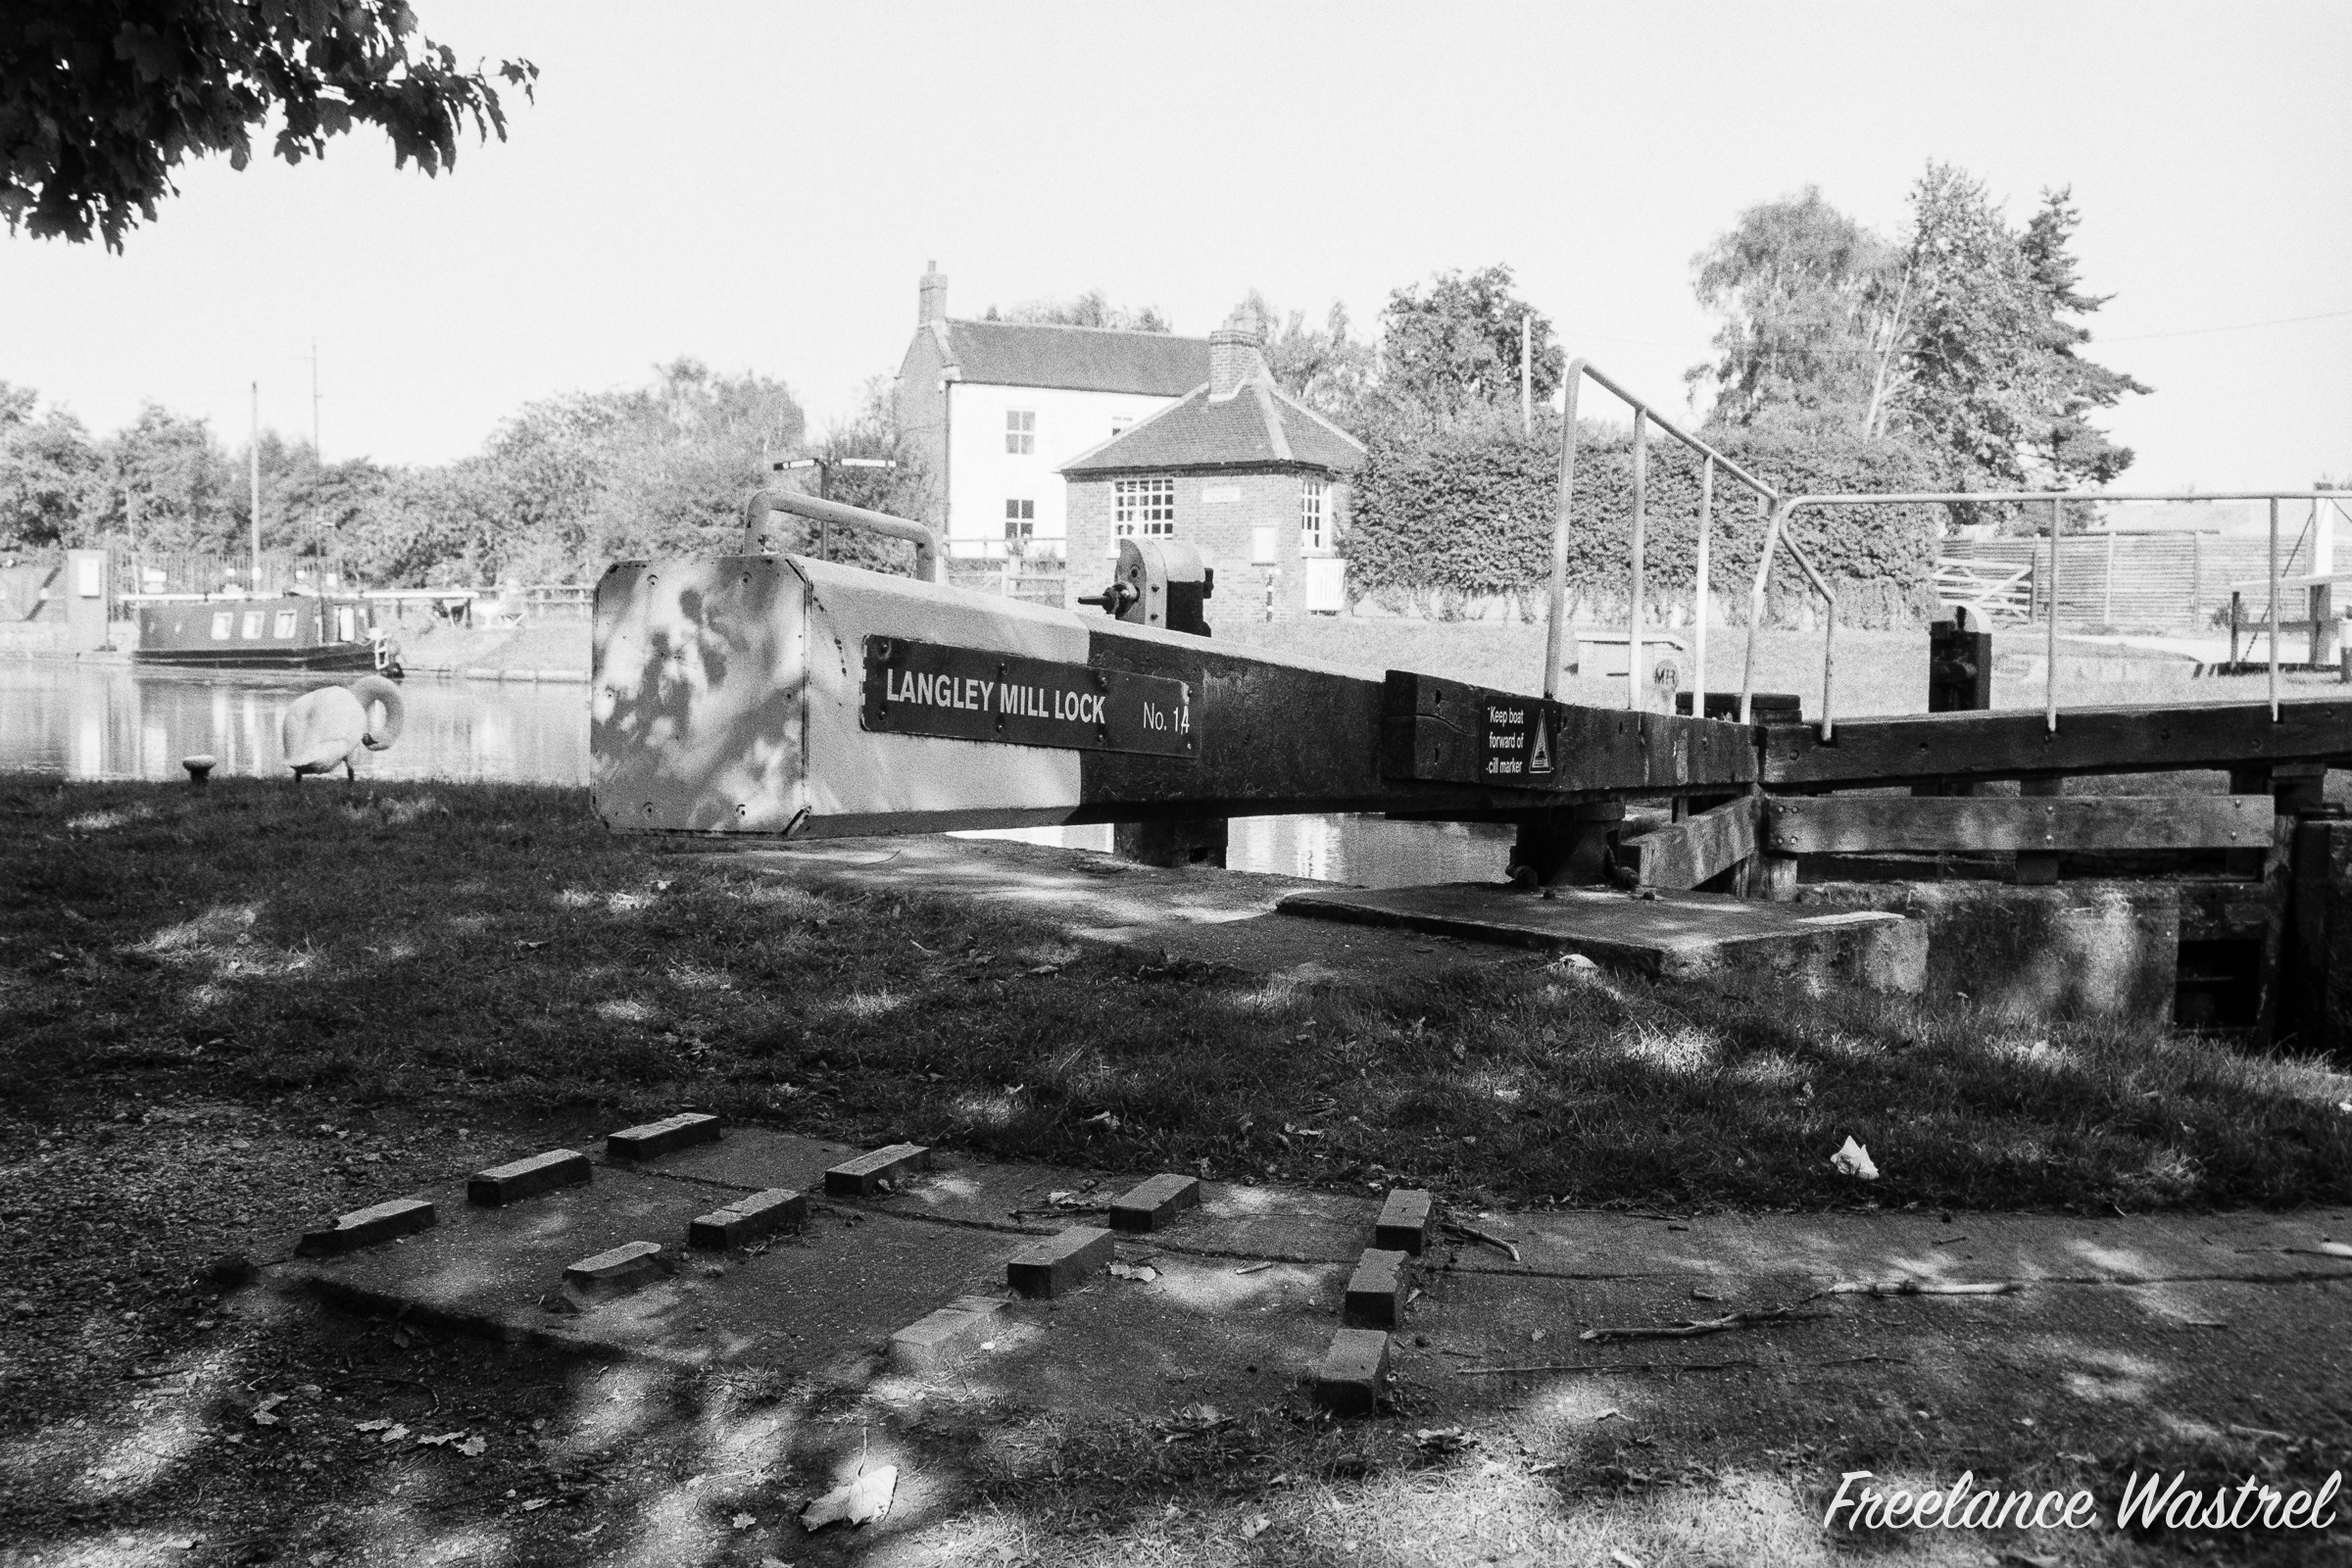 Langley Mill Lock No.14